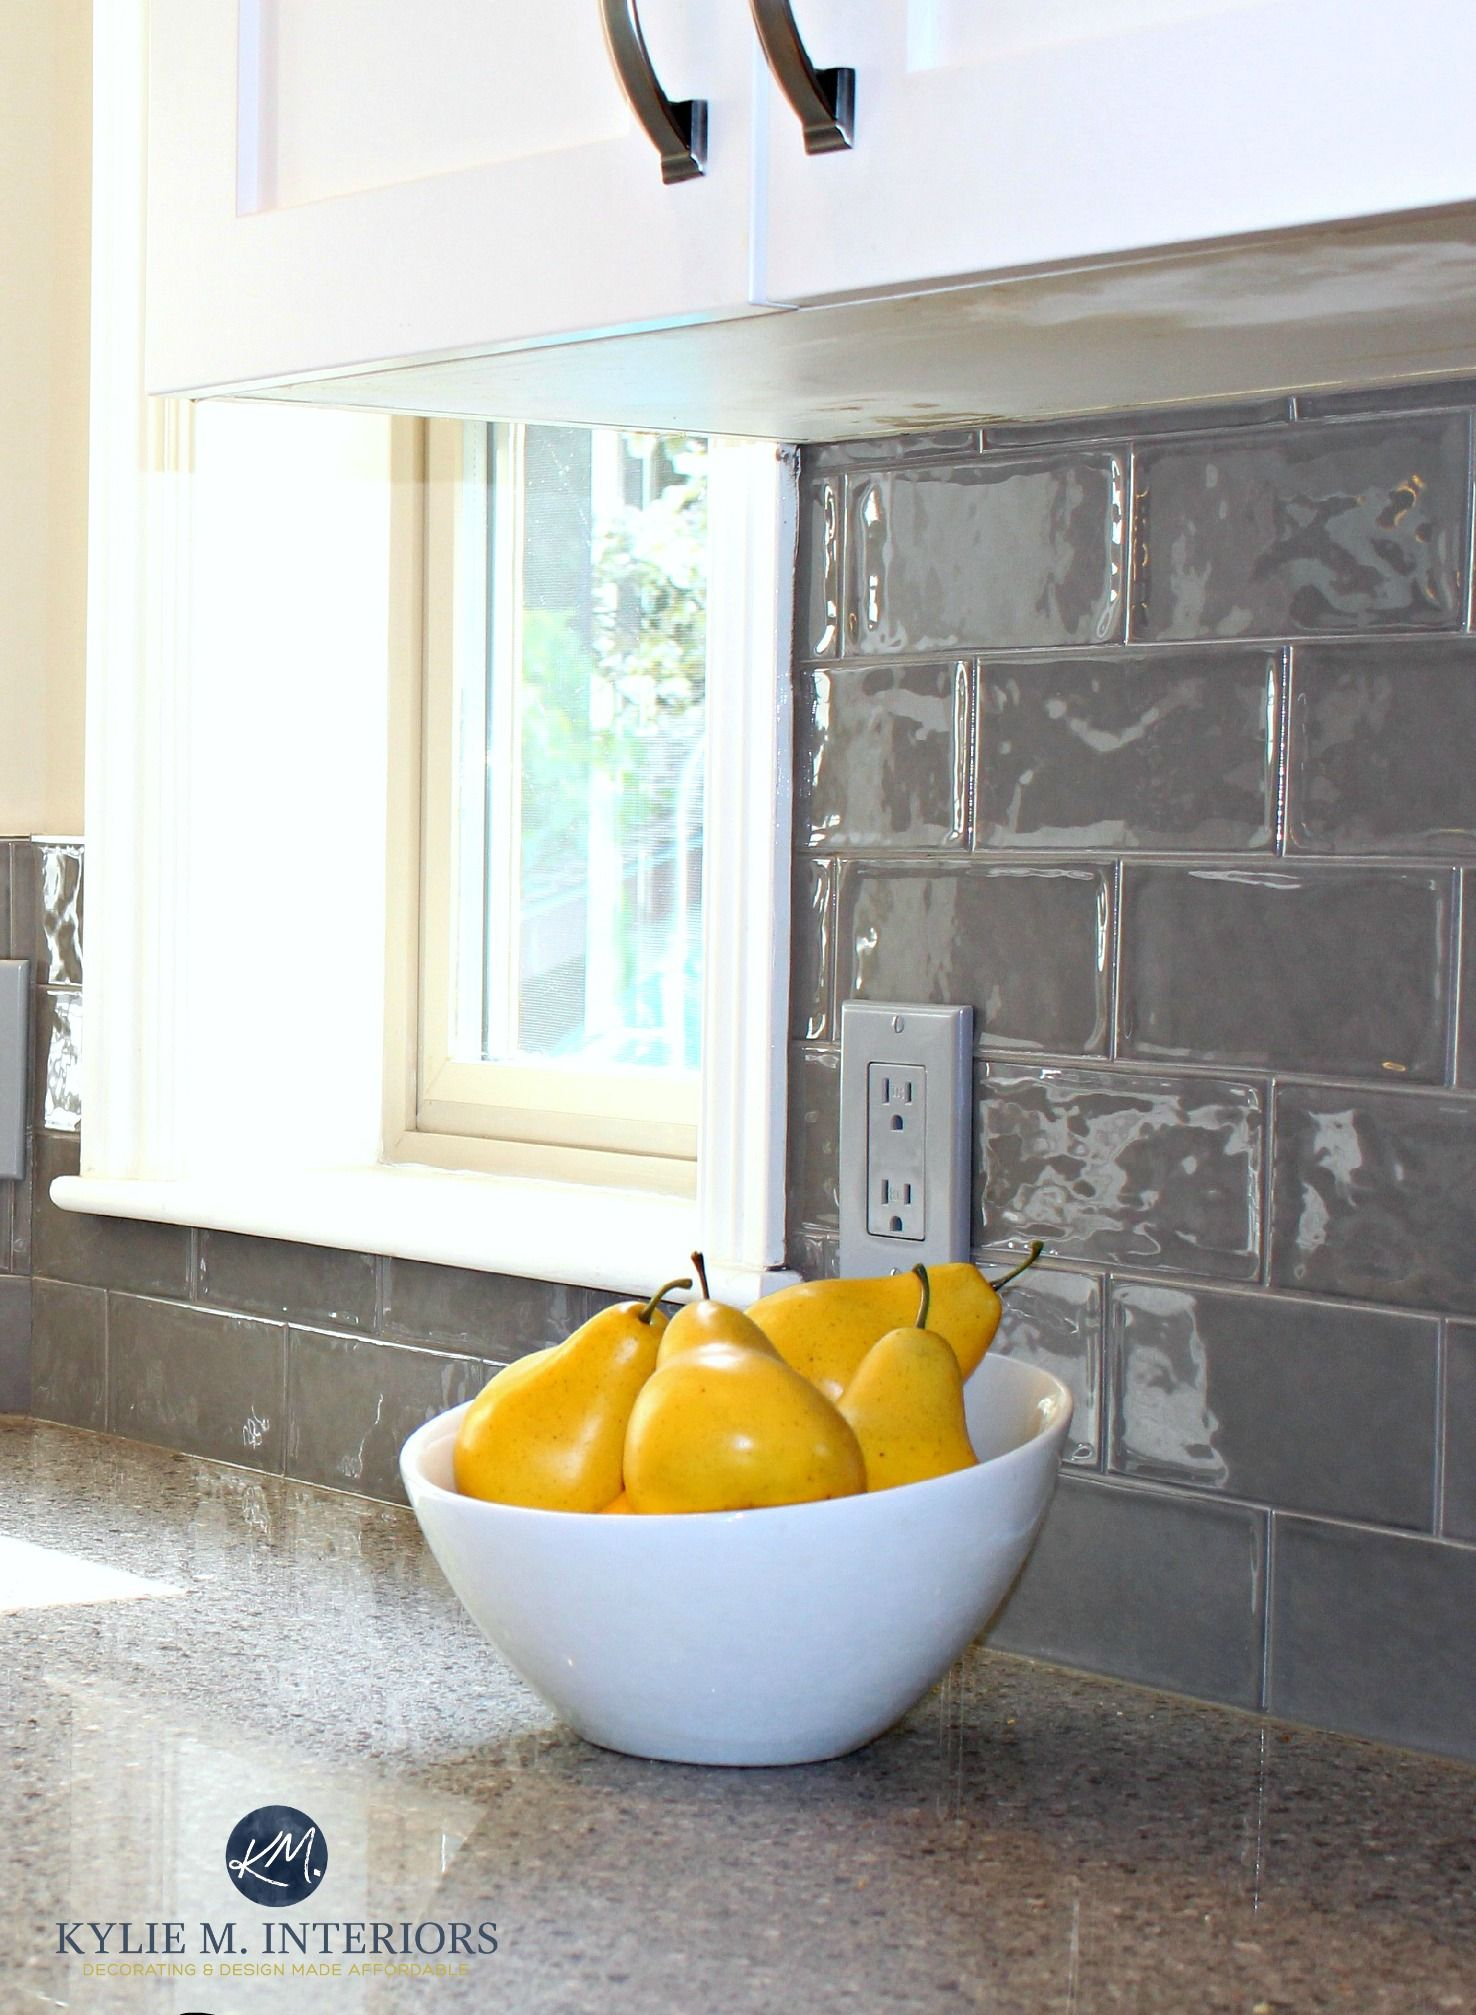 Glazed Shiny Gray Subway Tile In Kitchen Remodel With Quartz Countertops And White Painted Cabinets By Kylie M Interiors